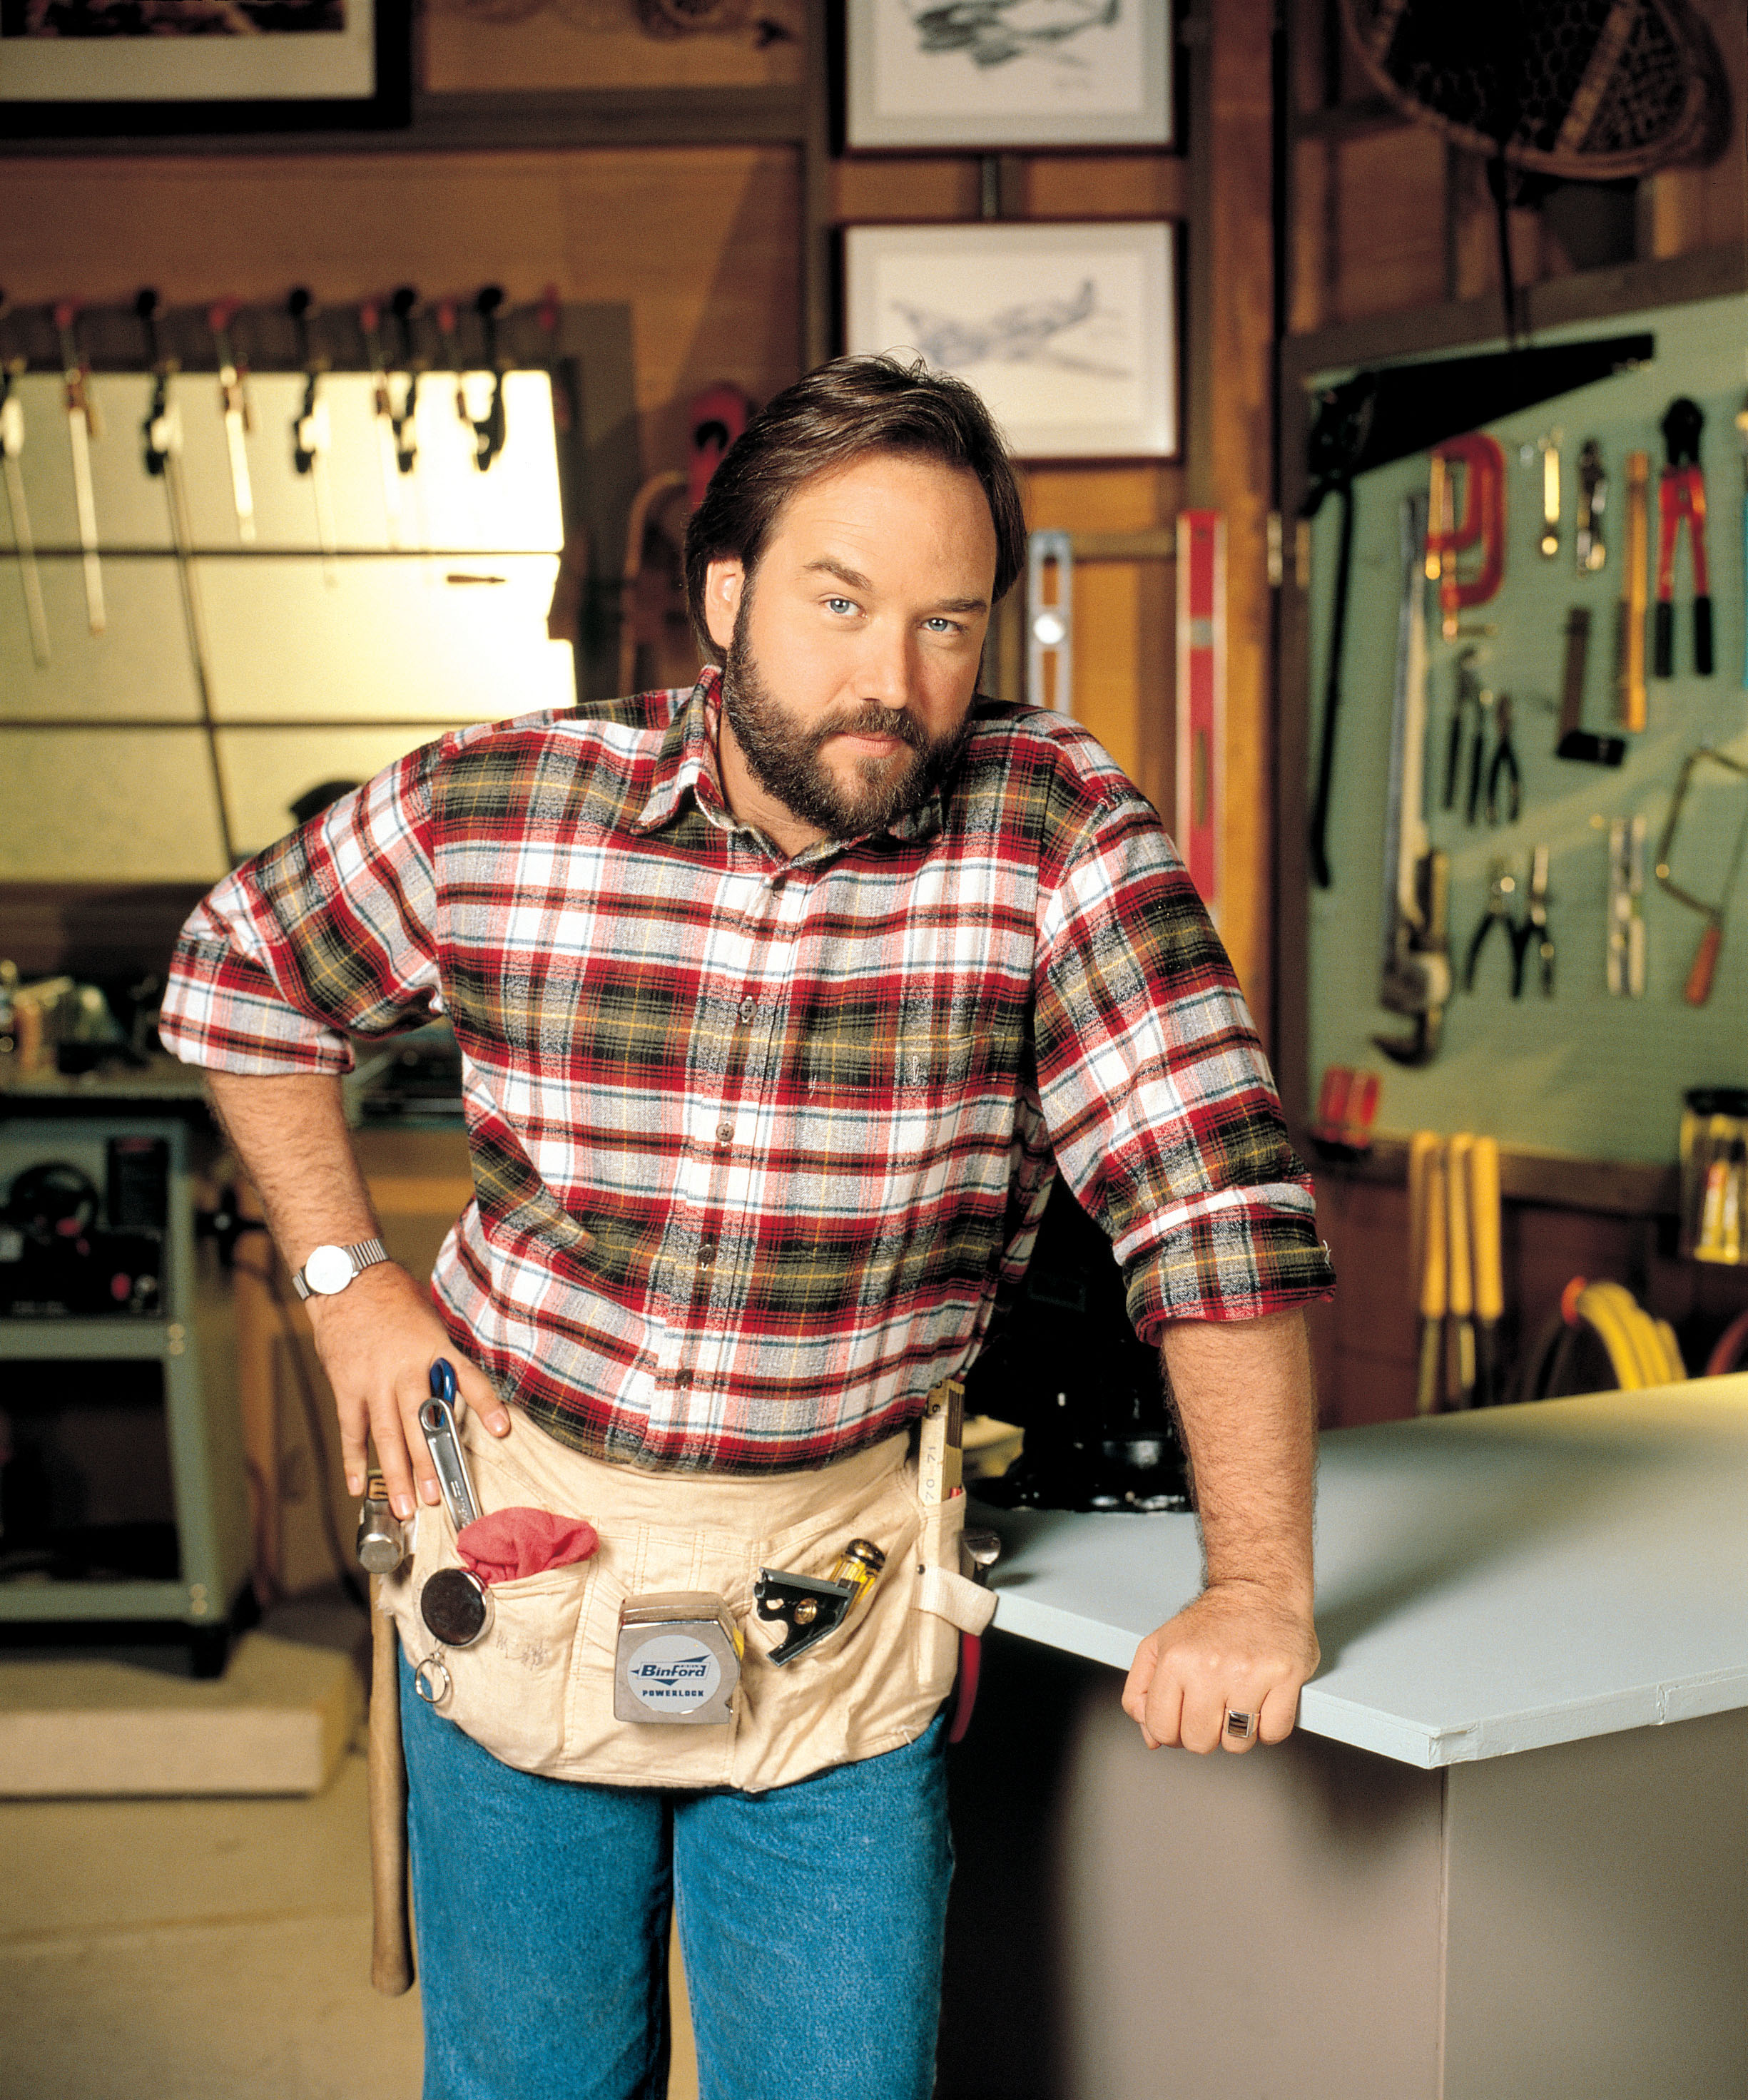 Richard karn as al on home improvement hallmark channel for Home improvement pics